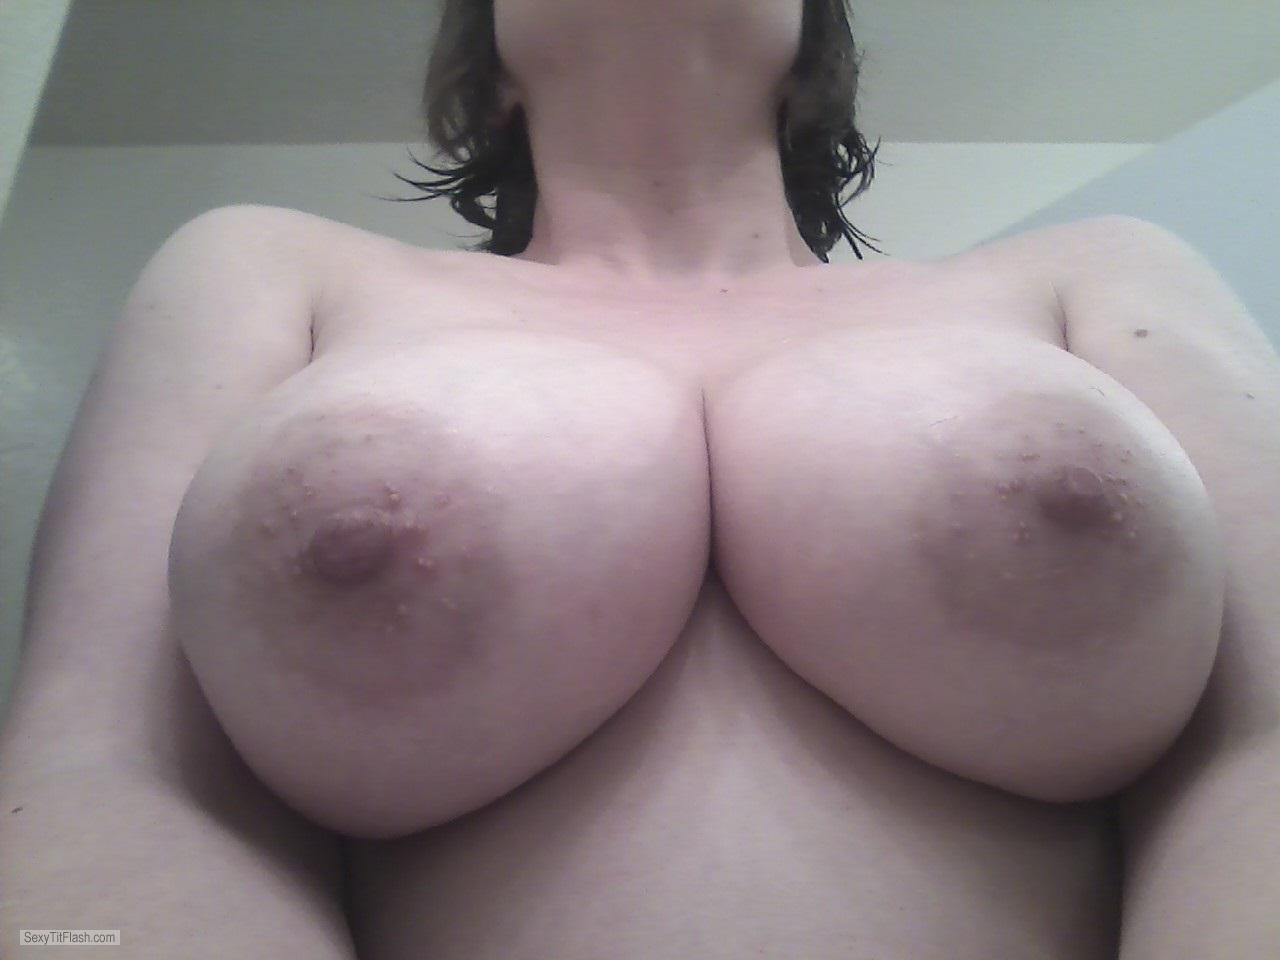 Tit Flash: My Very Big Tits (Selfie) - Lissa from United States